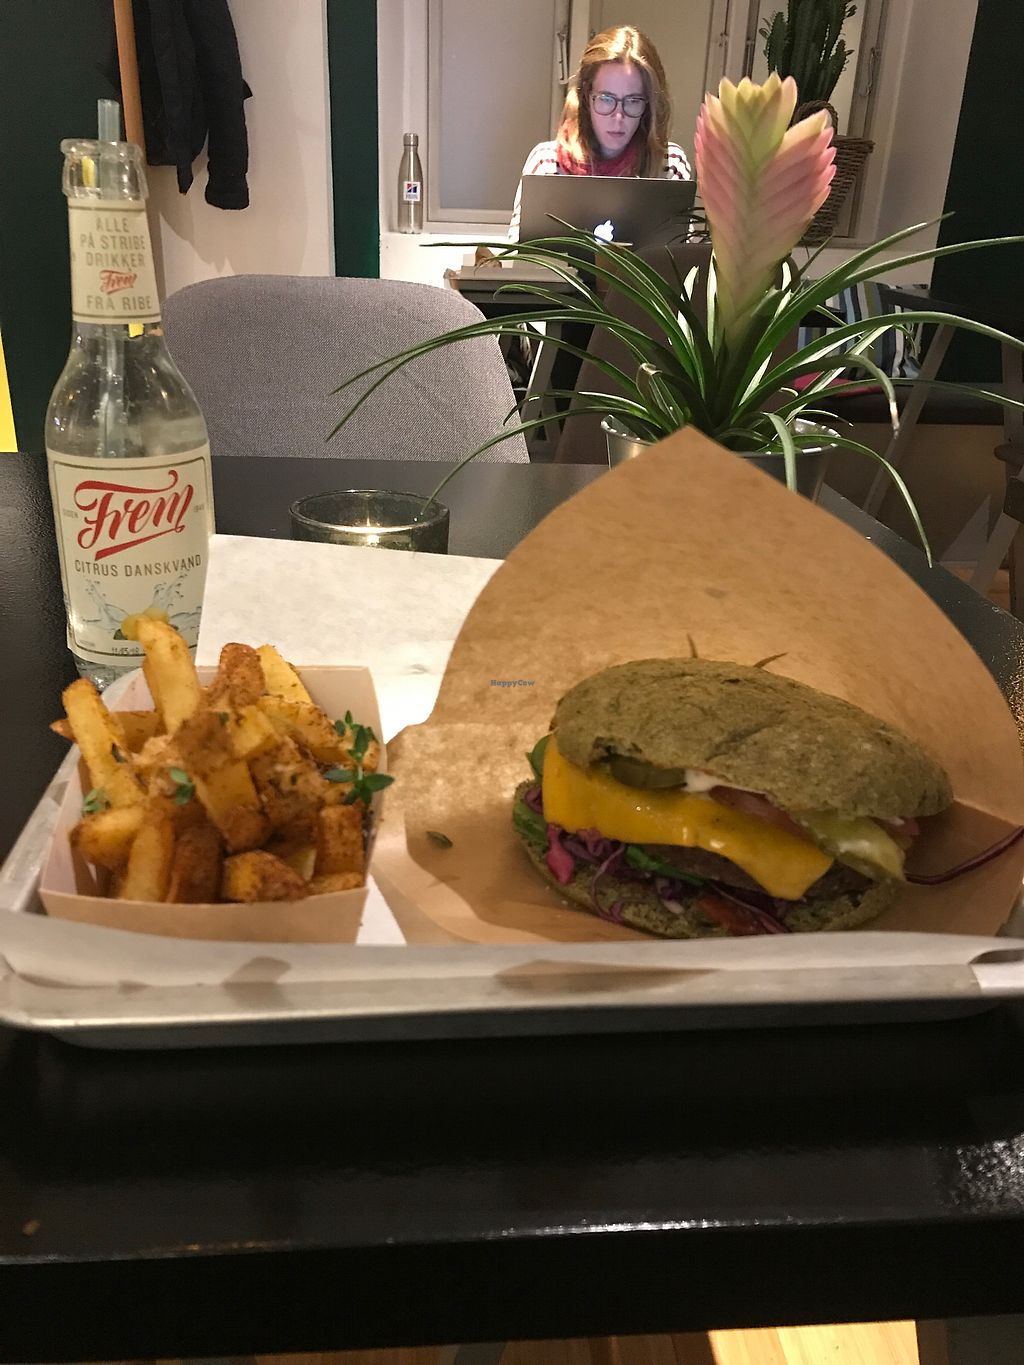 """Photo of GreenBurger - Frederiksborggade  by <a href=""""/members/profile/ClaireMartin"""">ClaireMartin</a> <br/>Tease Burger & Chilli Fries! <br/> November 21, 2017  - <a href='/contact/abuse/image/81101/327835'>Report</a>"""